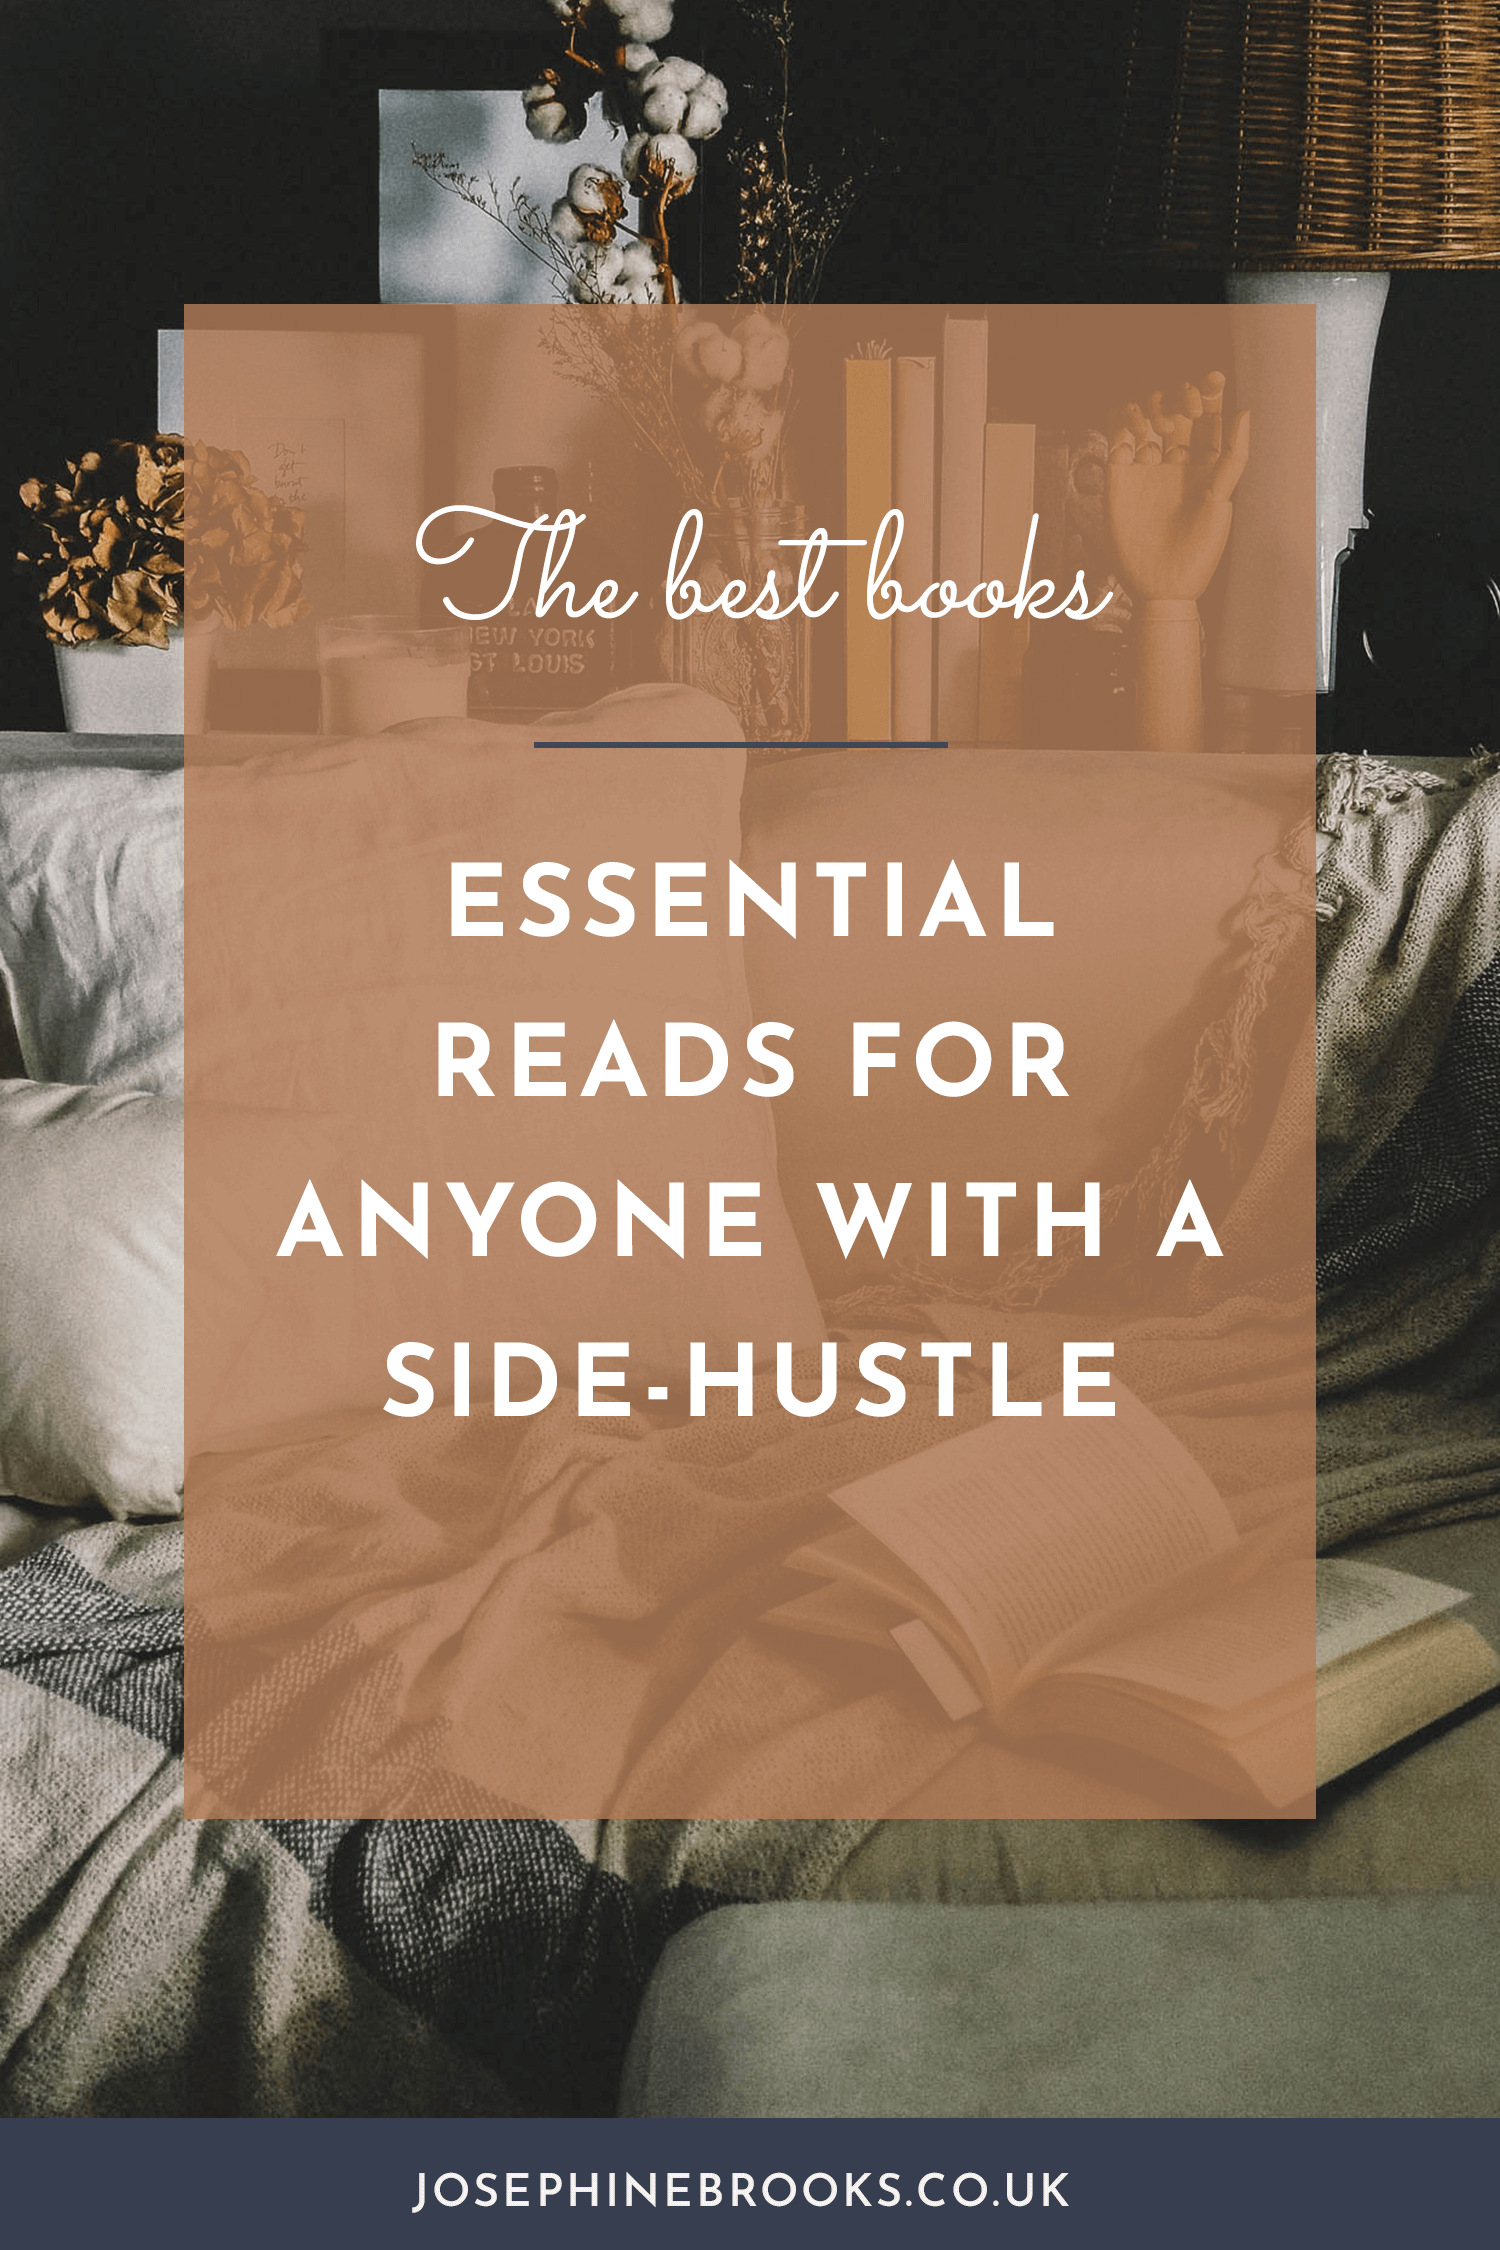 The Best Books for growing a Side-Hustle, reading for side-hustlers, Books on growing a creative business, Best business books